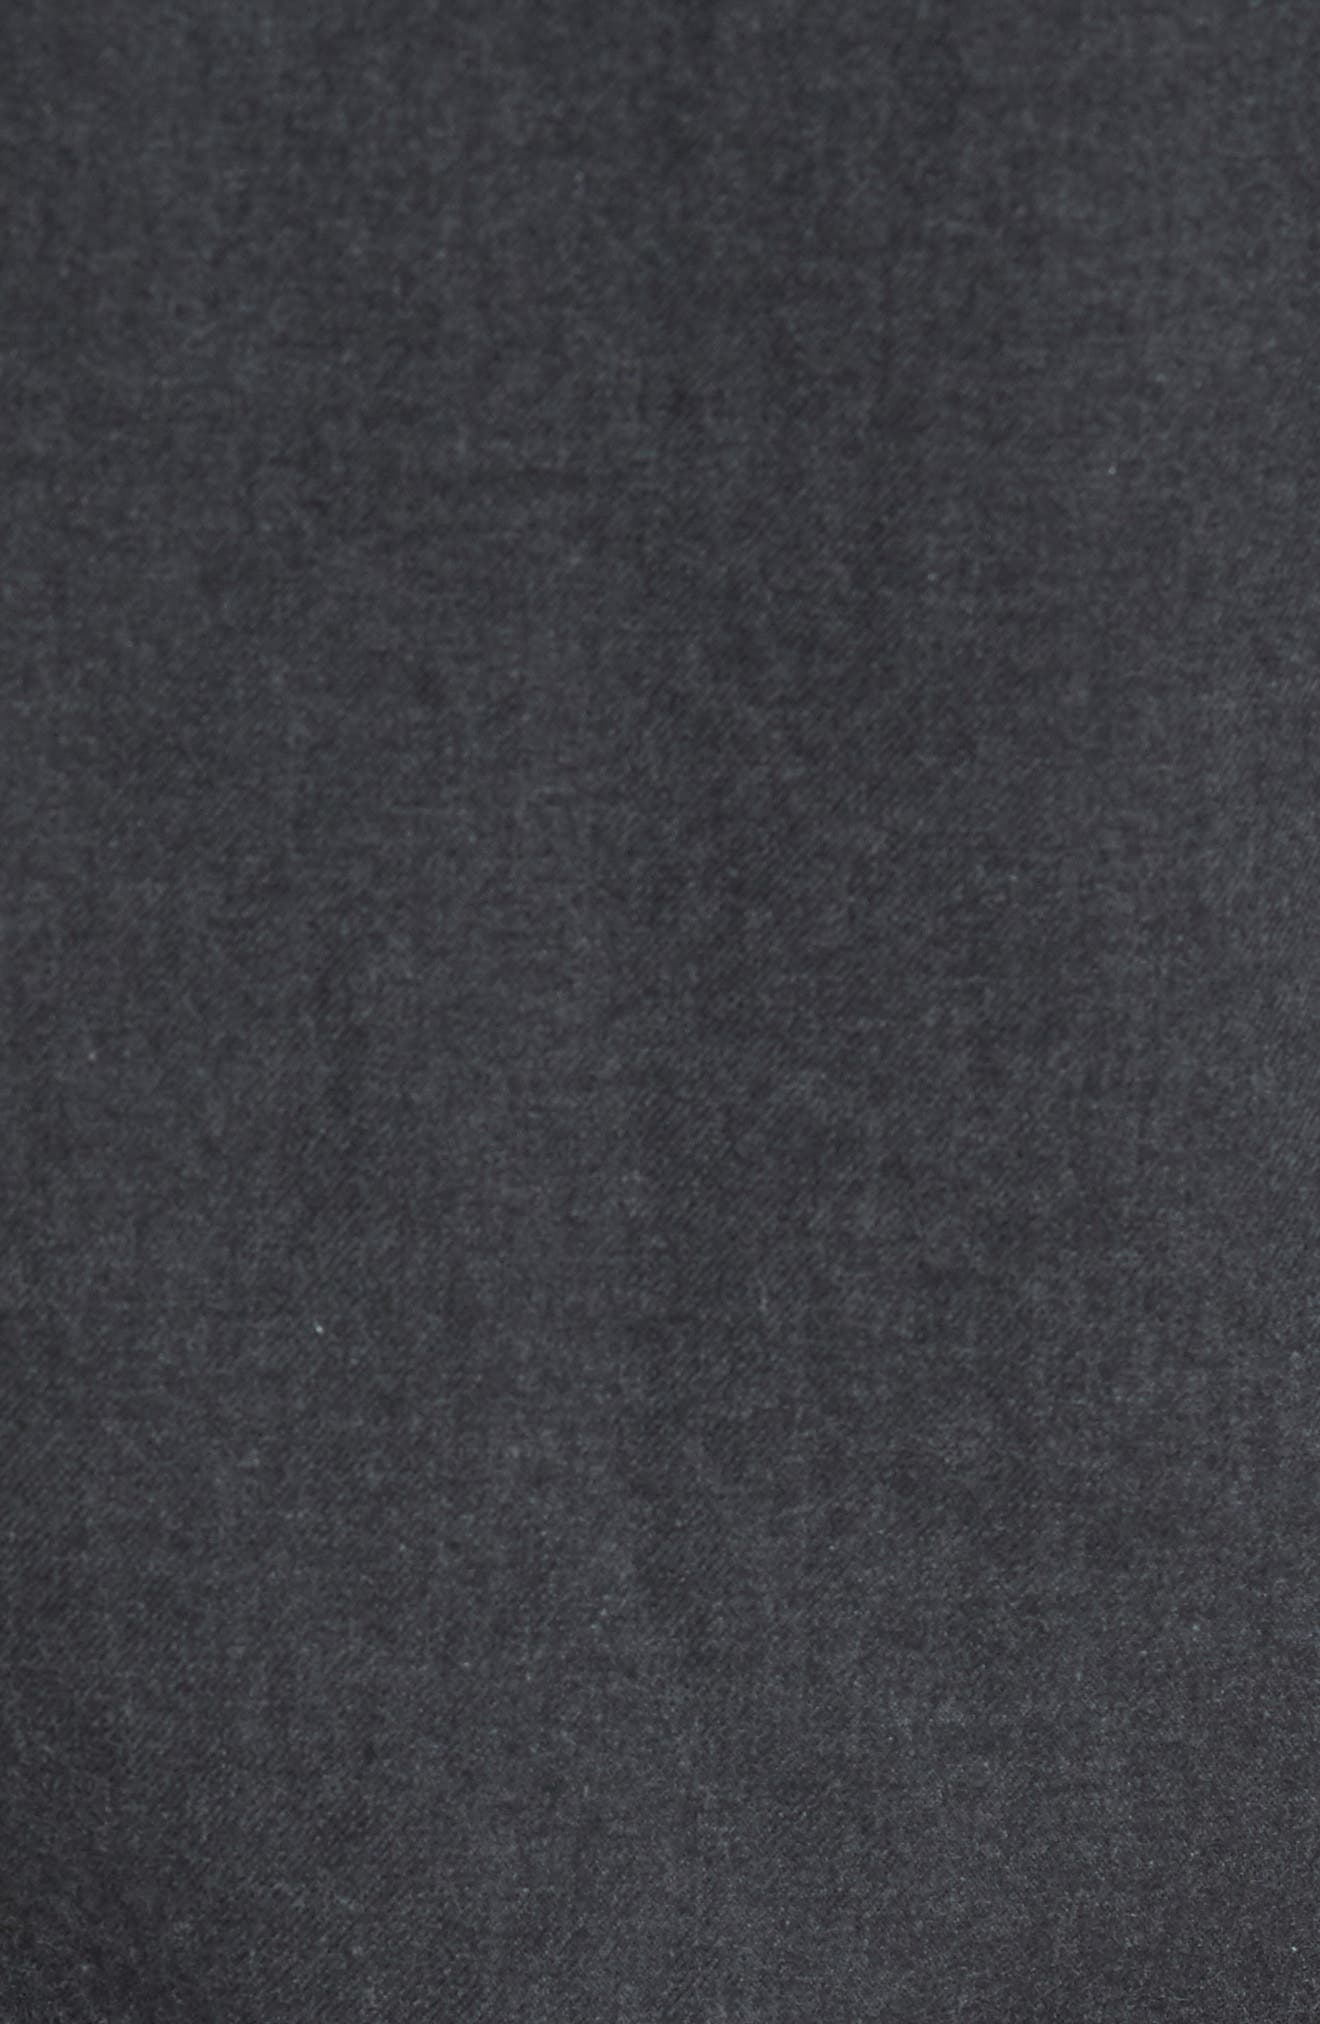 Slim Fit Brushed Twill Sport Shirt,                             Alternate thumbnail 5, color,                             Heather Charcoal